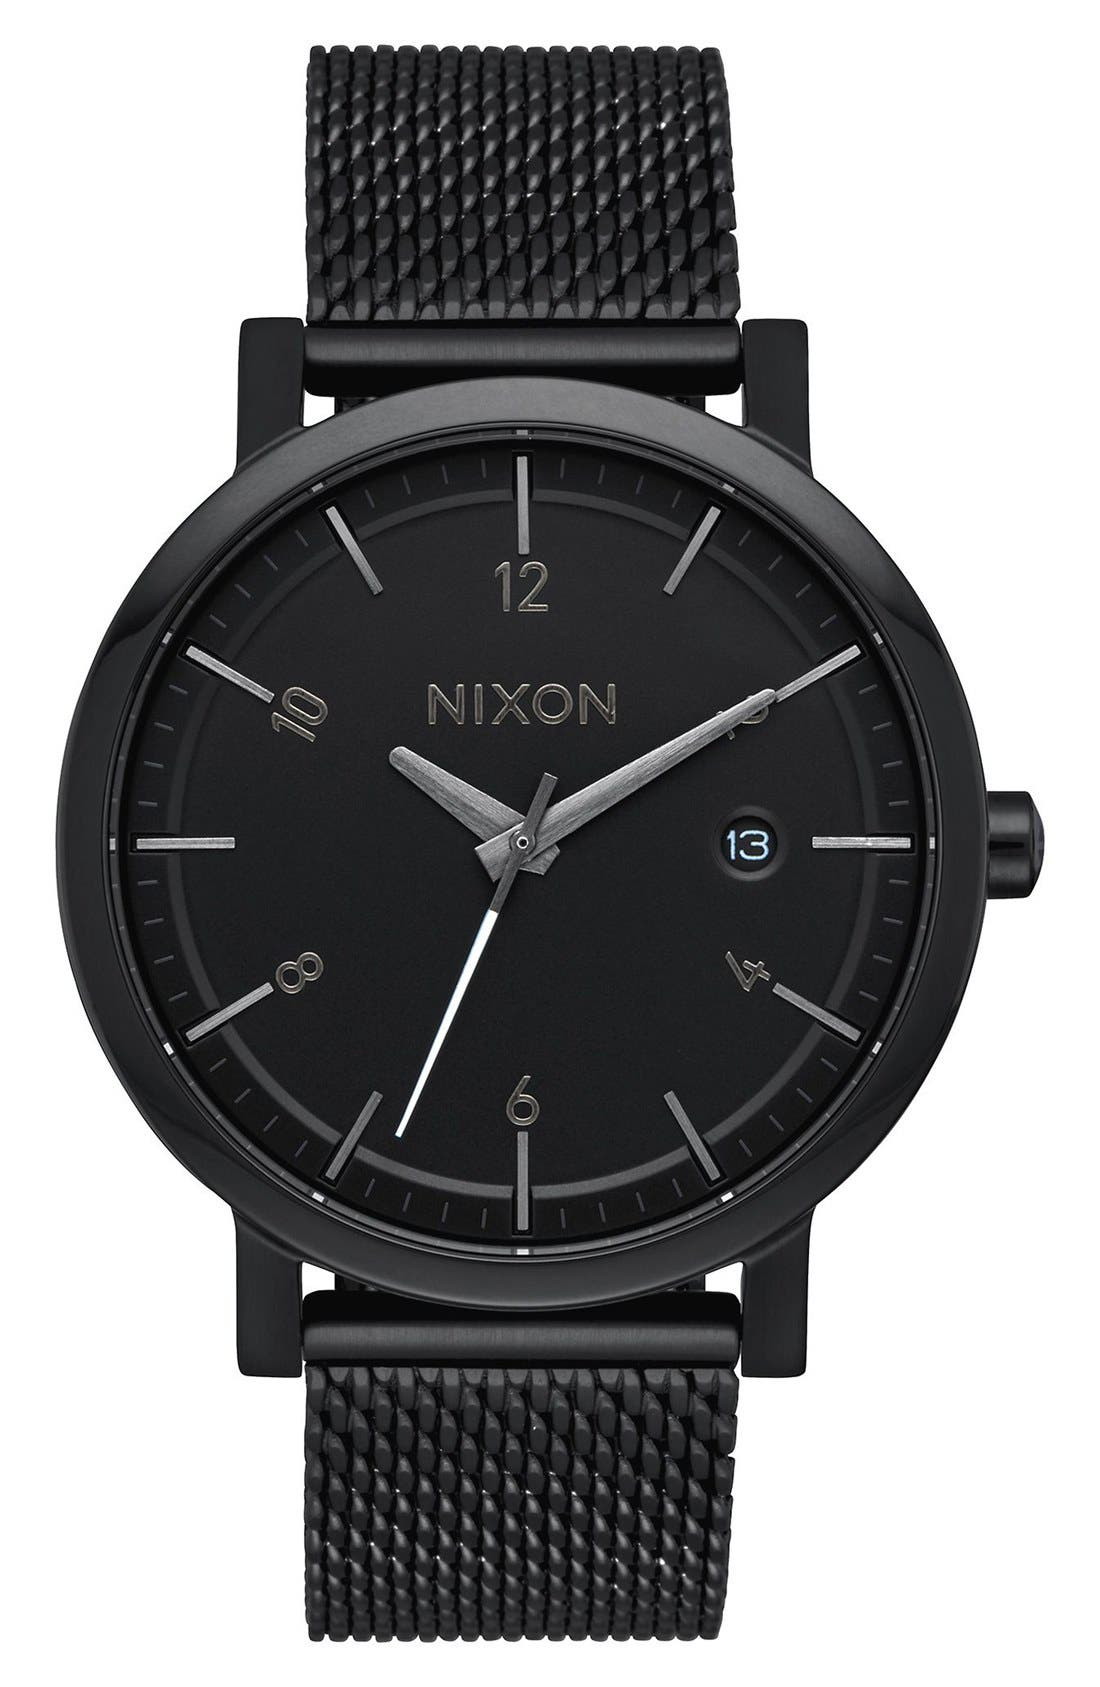 NIXON Rollo Mesh Strap Watch, 38mm